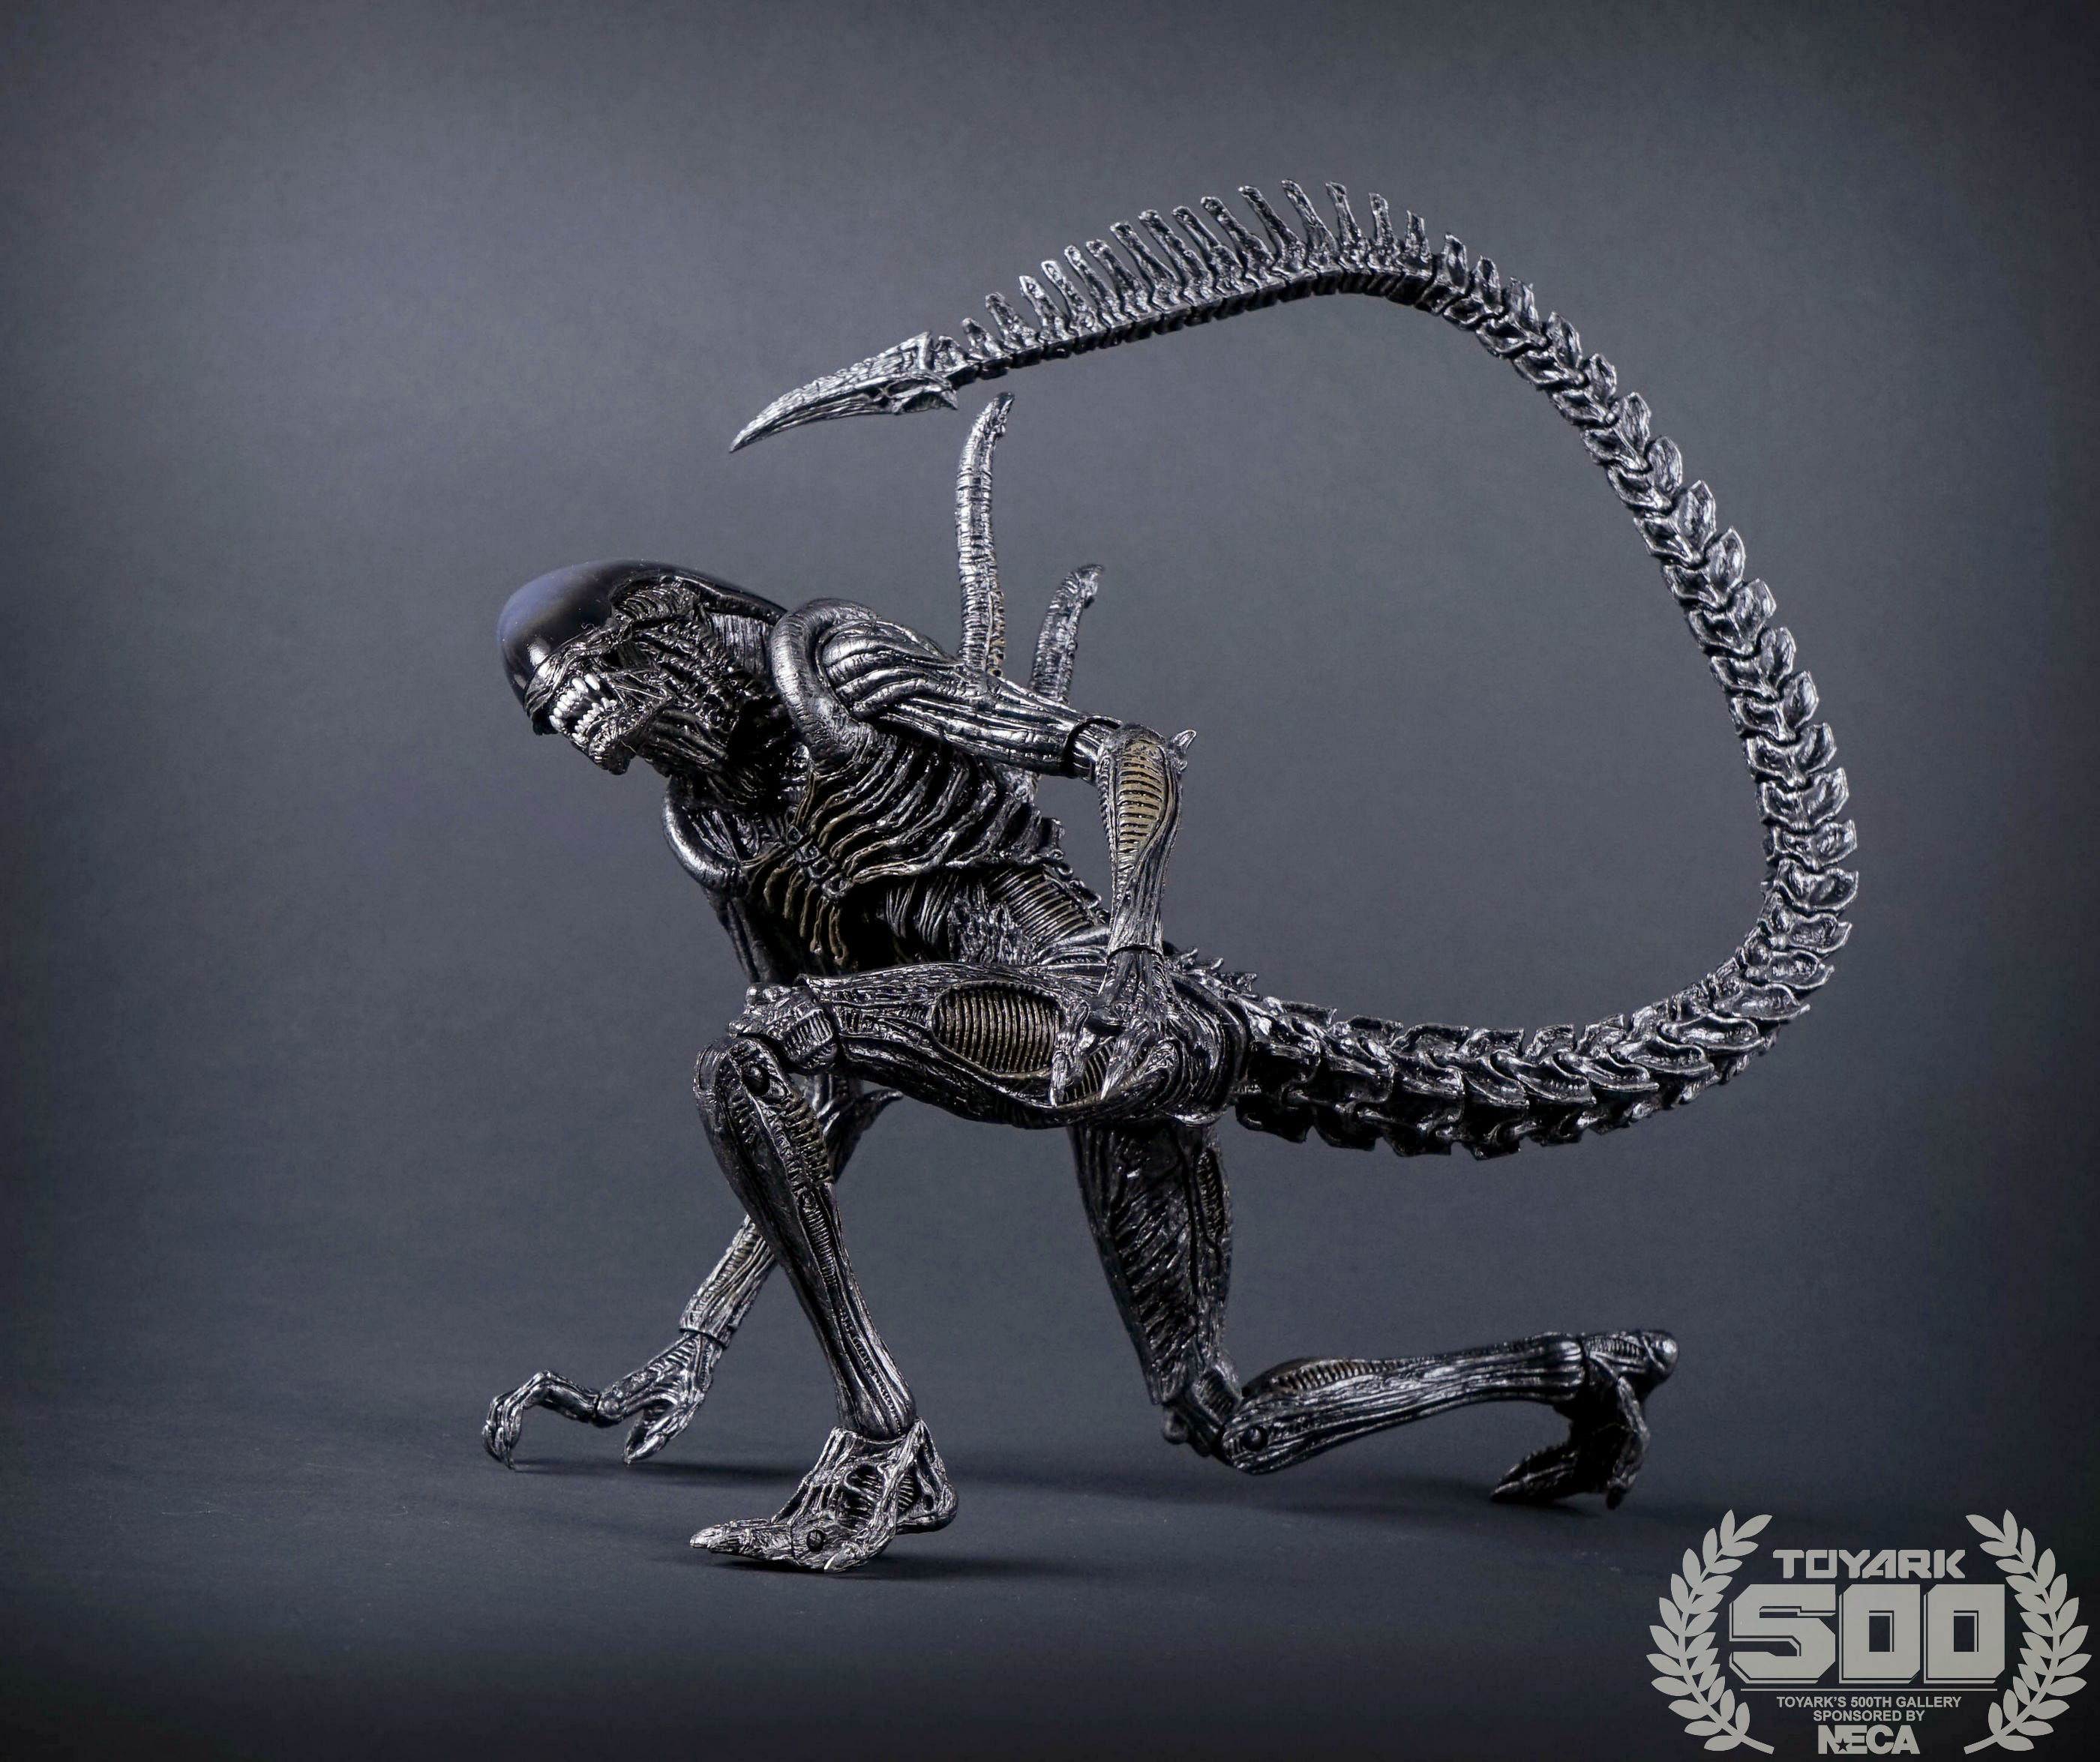 http://news.toyark.com/wp-content/uploads/sites/4/2016/01/Alien-Series-7-NECA-035.jpg